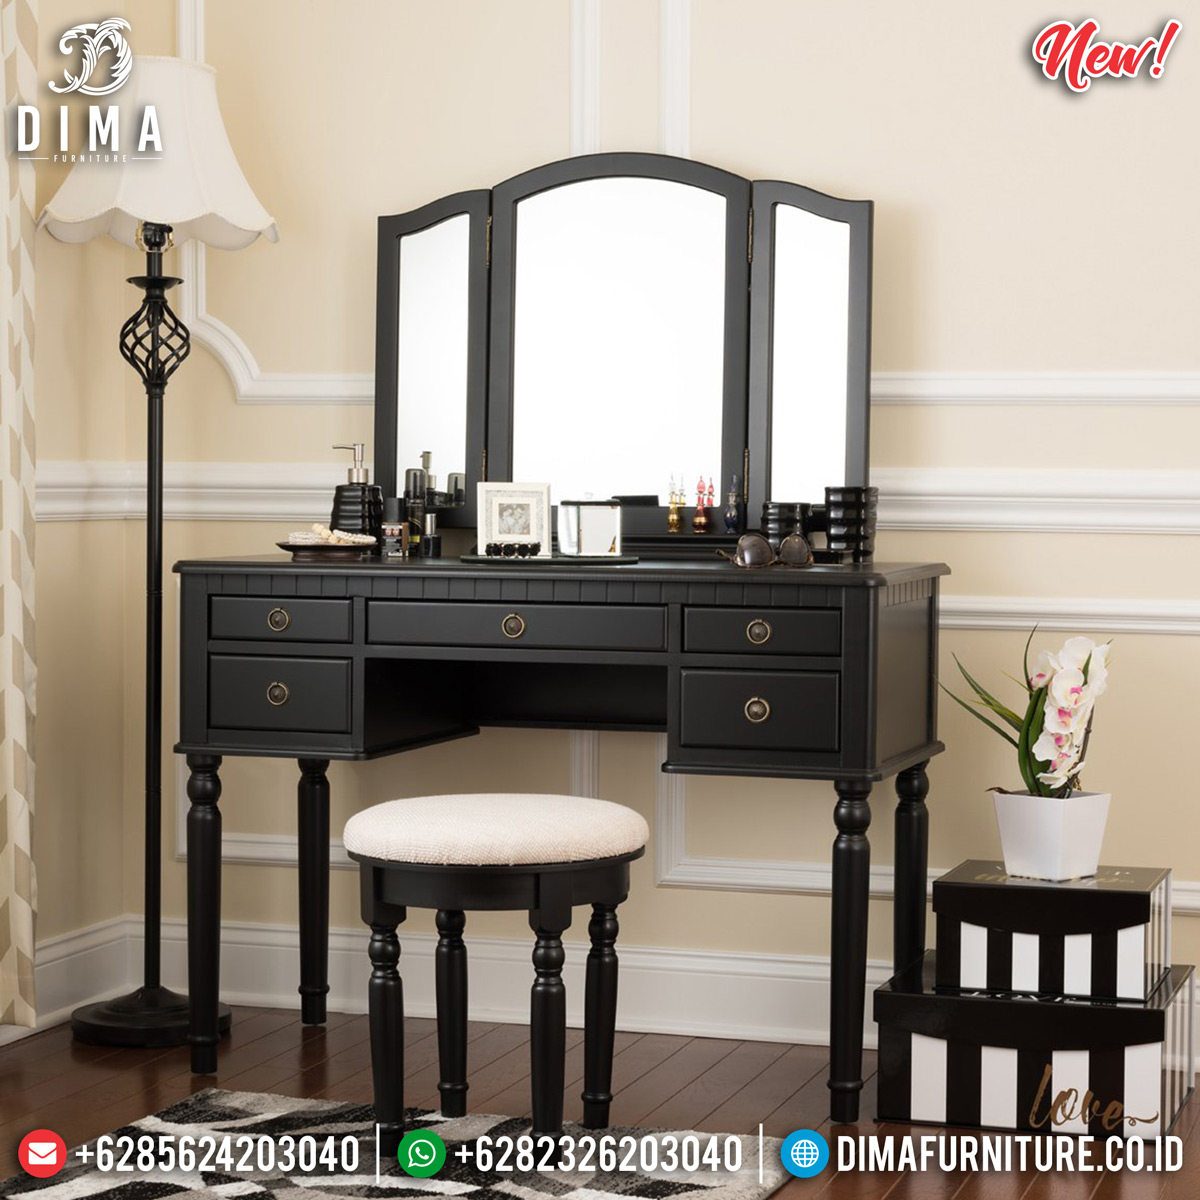 Harga Meja Rias Minimalis Furniture Jepara Luxury Get Sale Price BT-0728